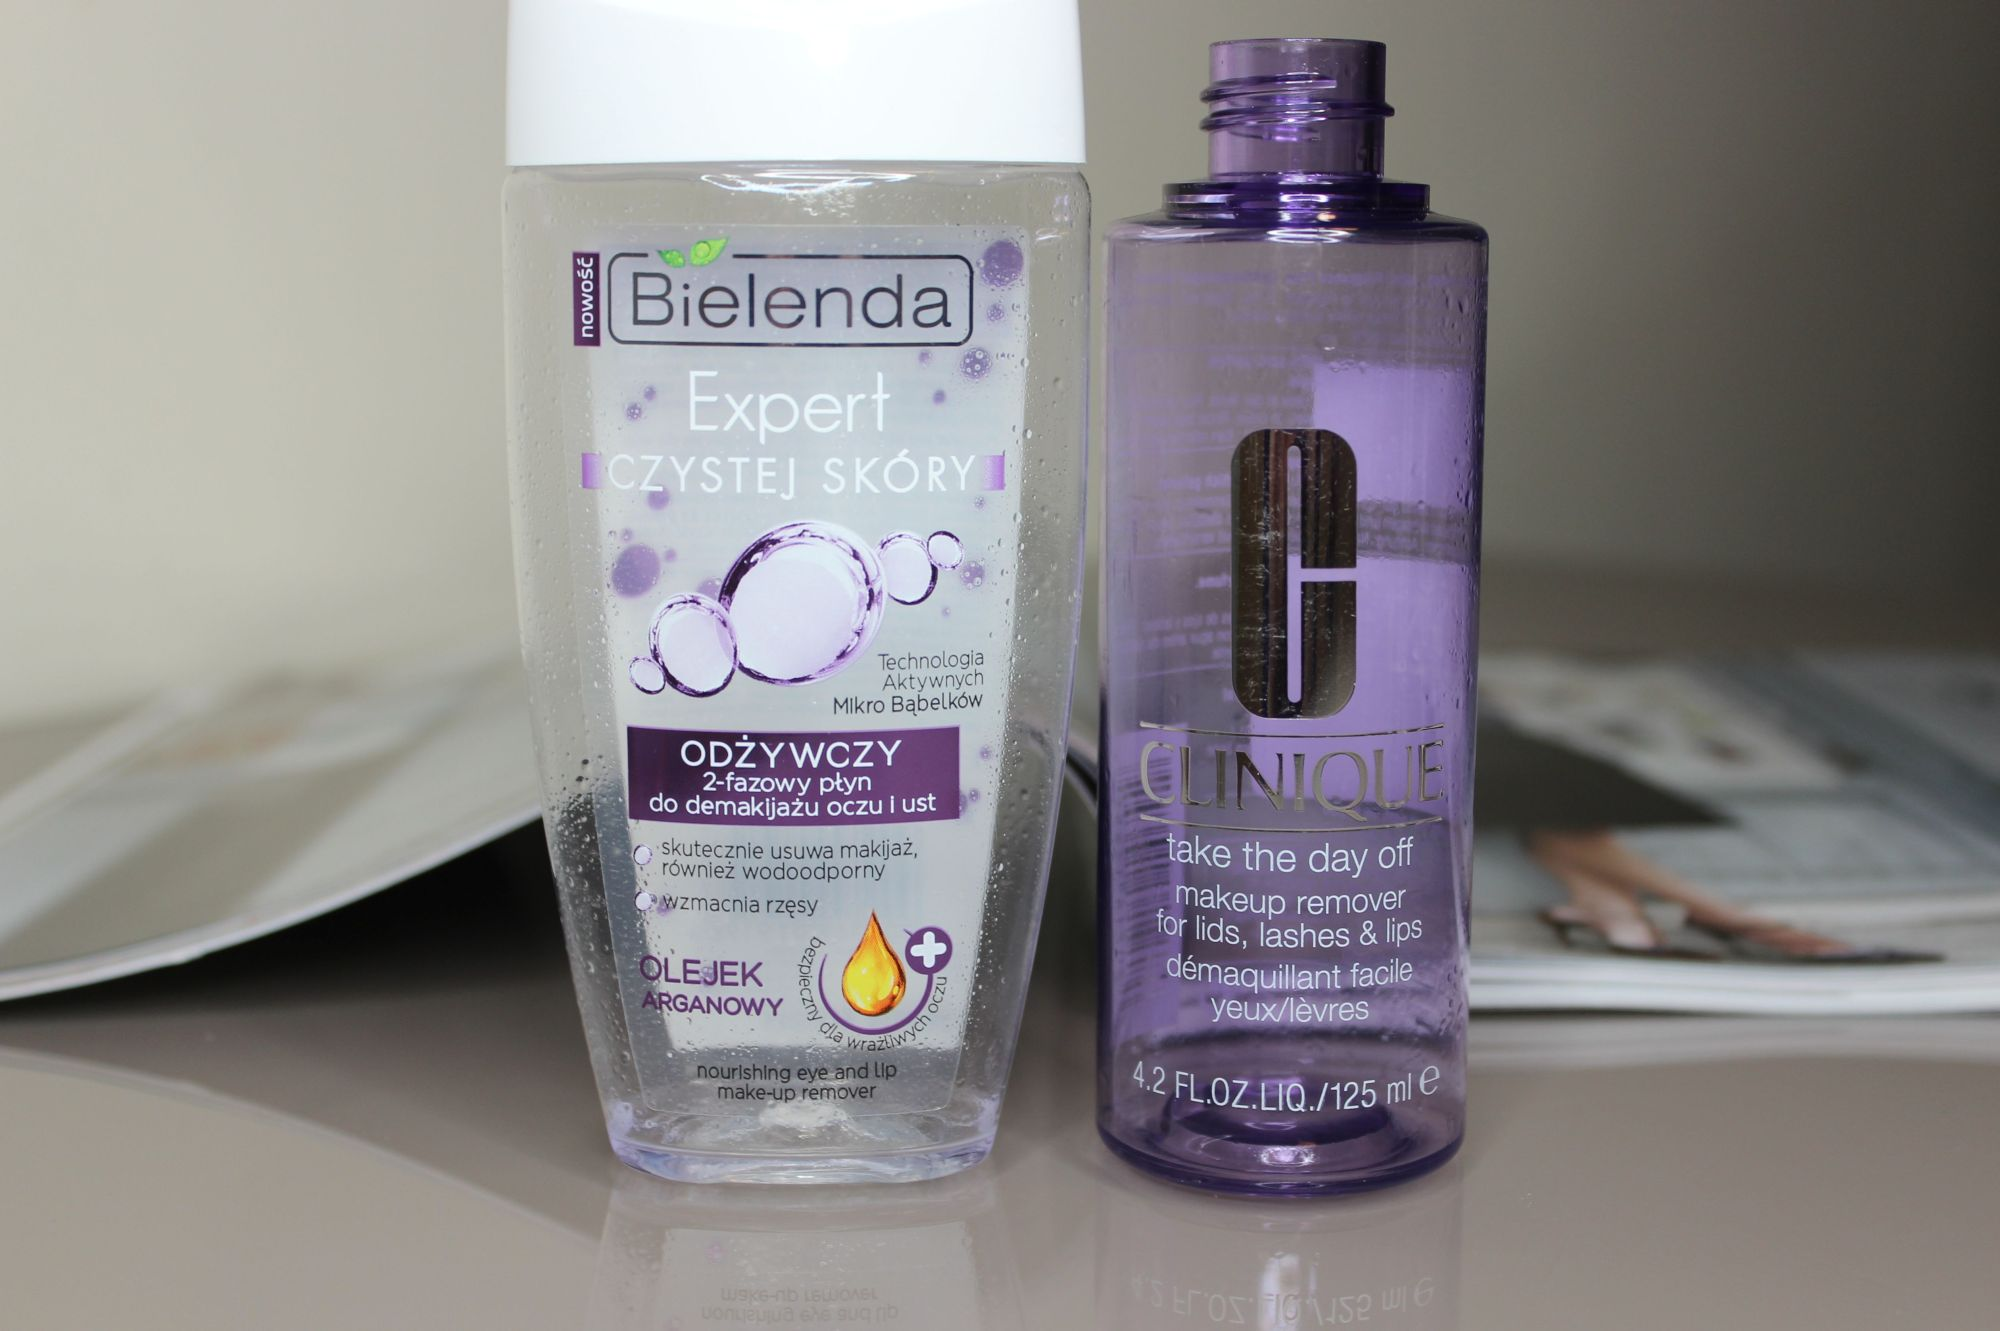 bielenda-bi-phase-liquid-clinique-take-the-day-off